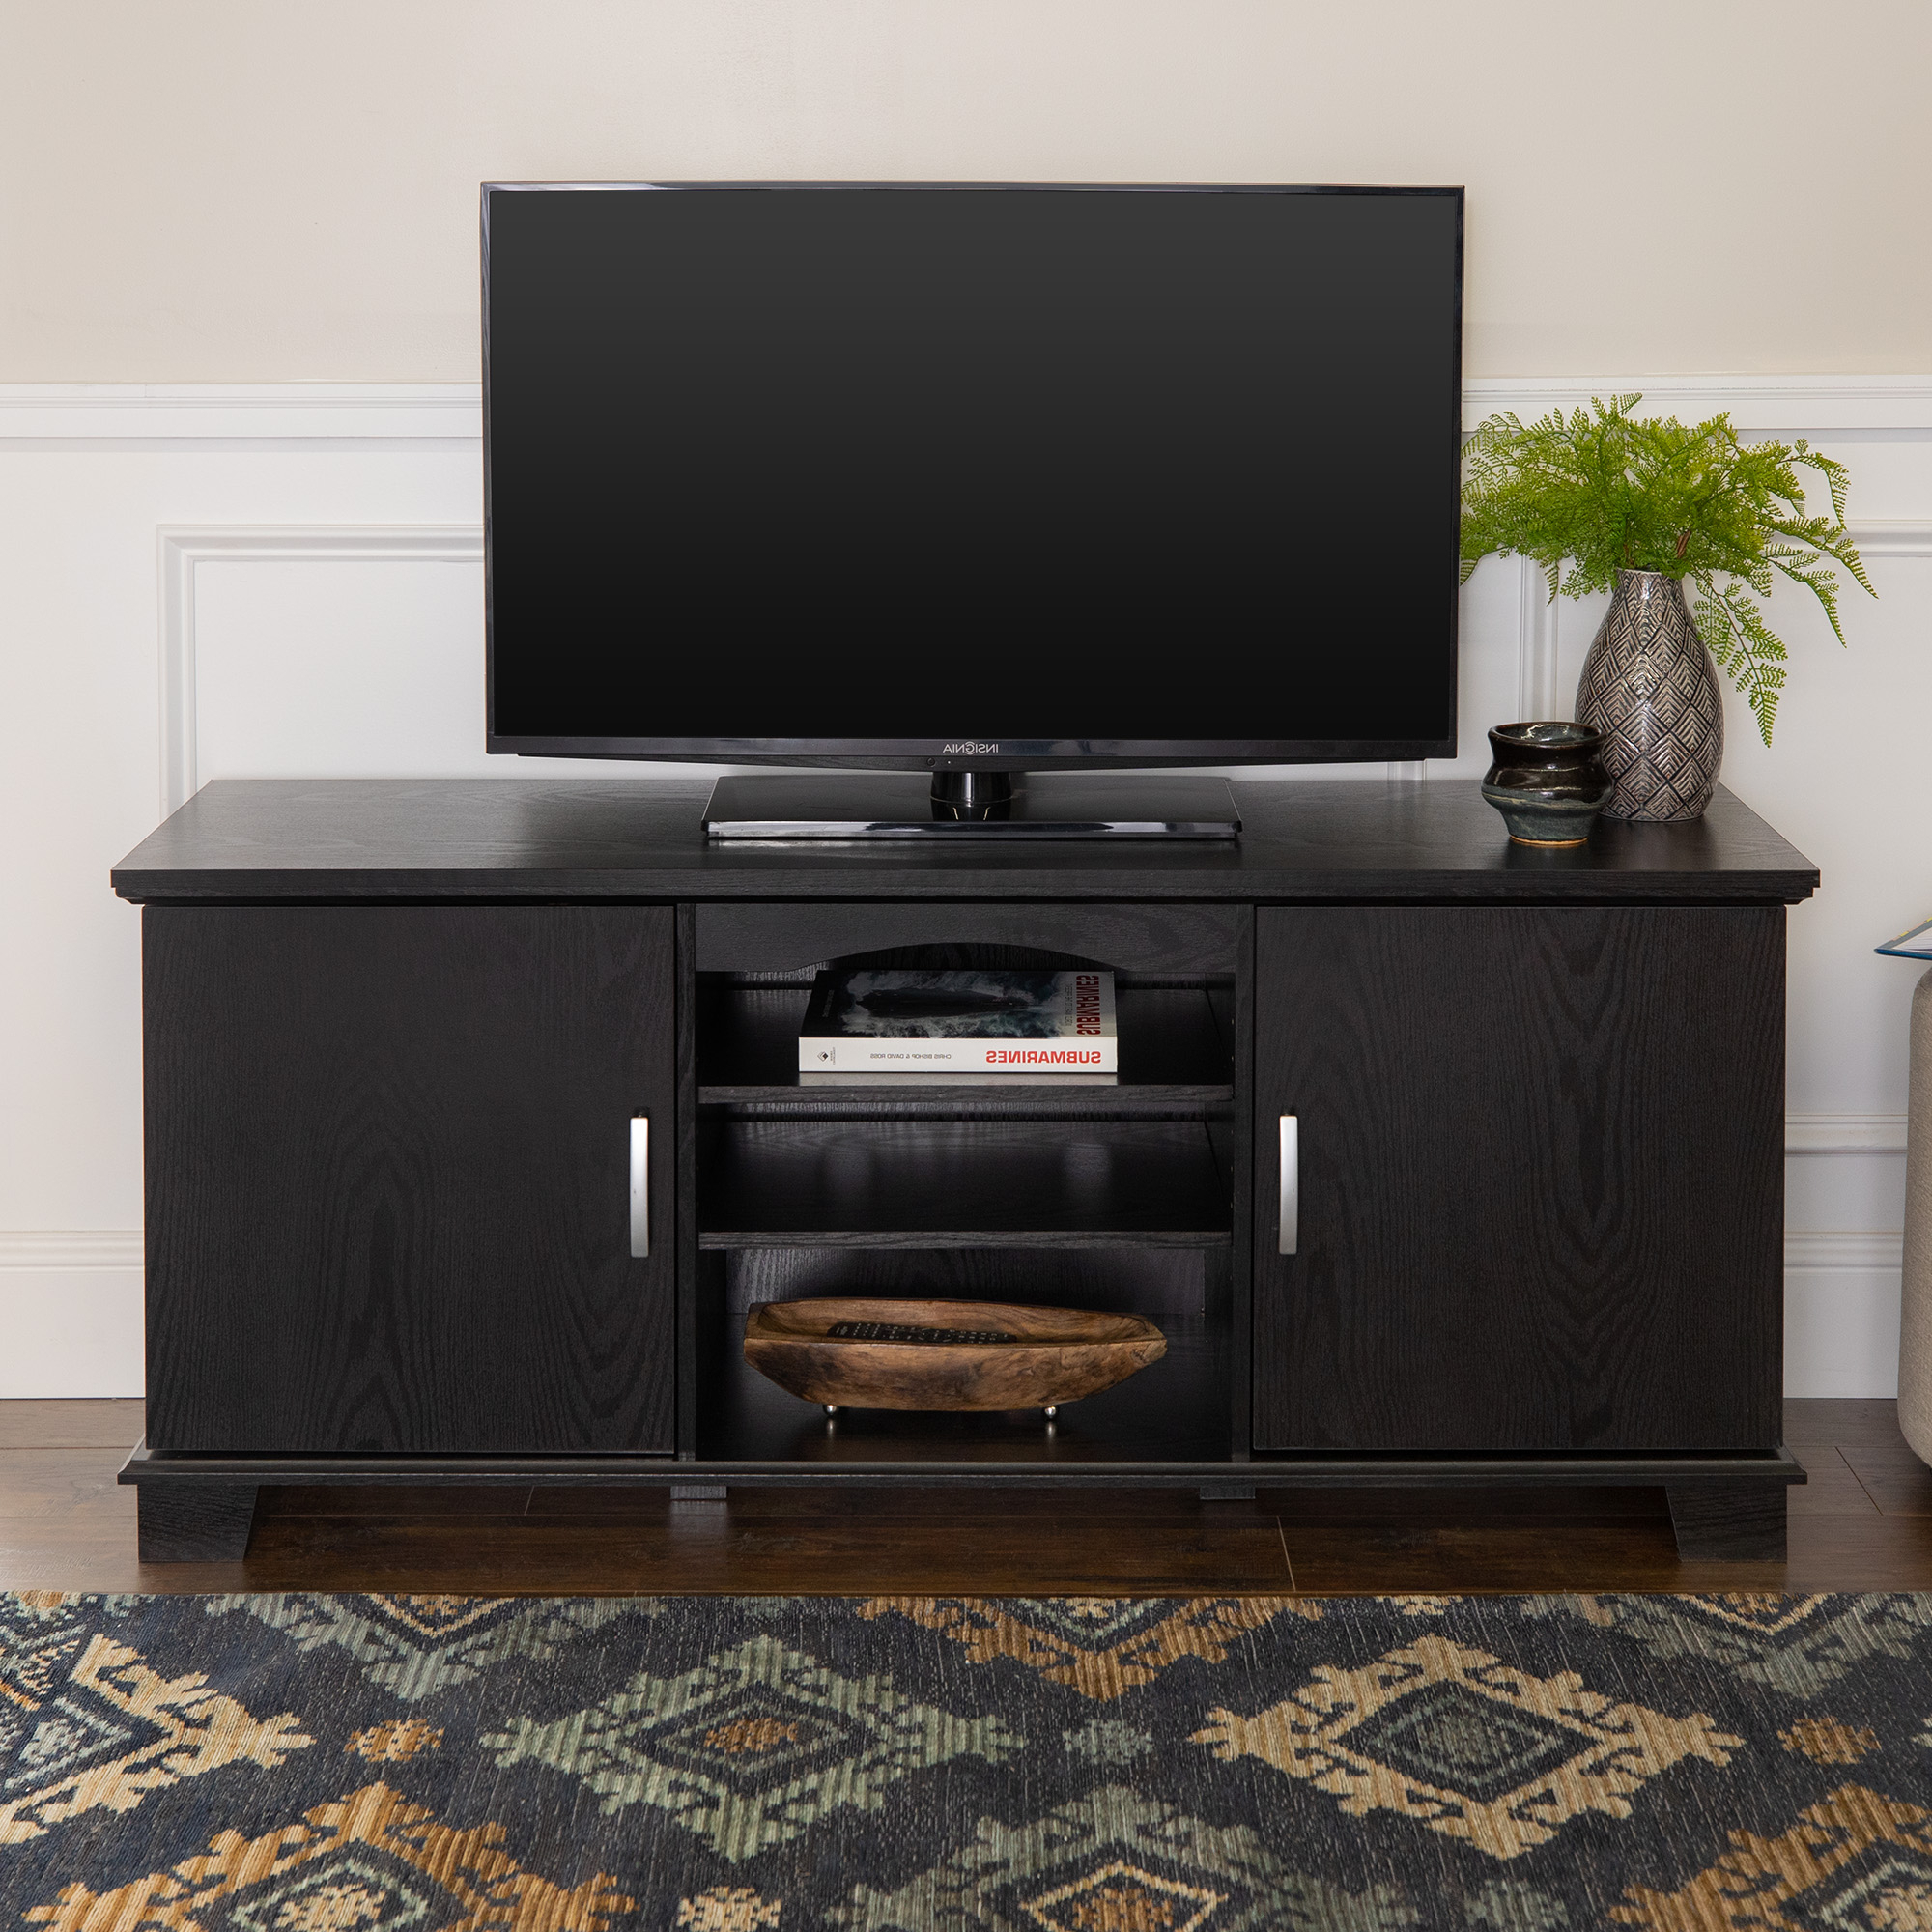 Famous Walker Edison Transitional Tv Stand For Tvs Up To 66 Intended For Owen Retro Tv Unit Stands (View 10 of 25)